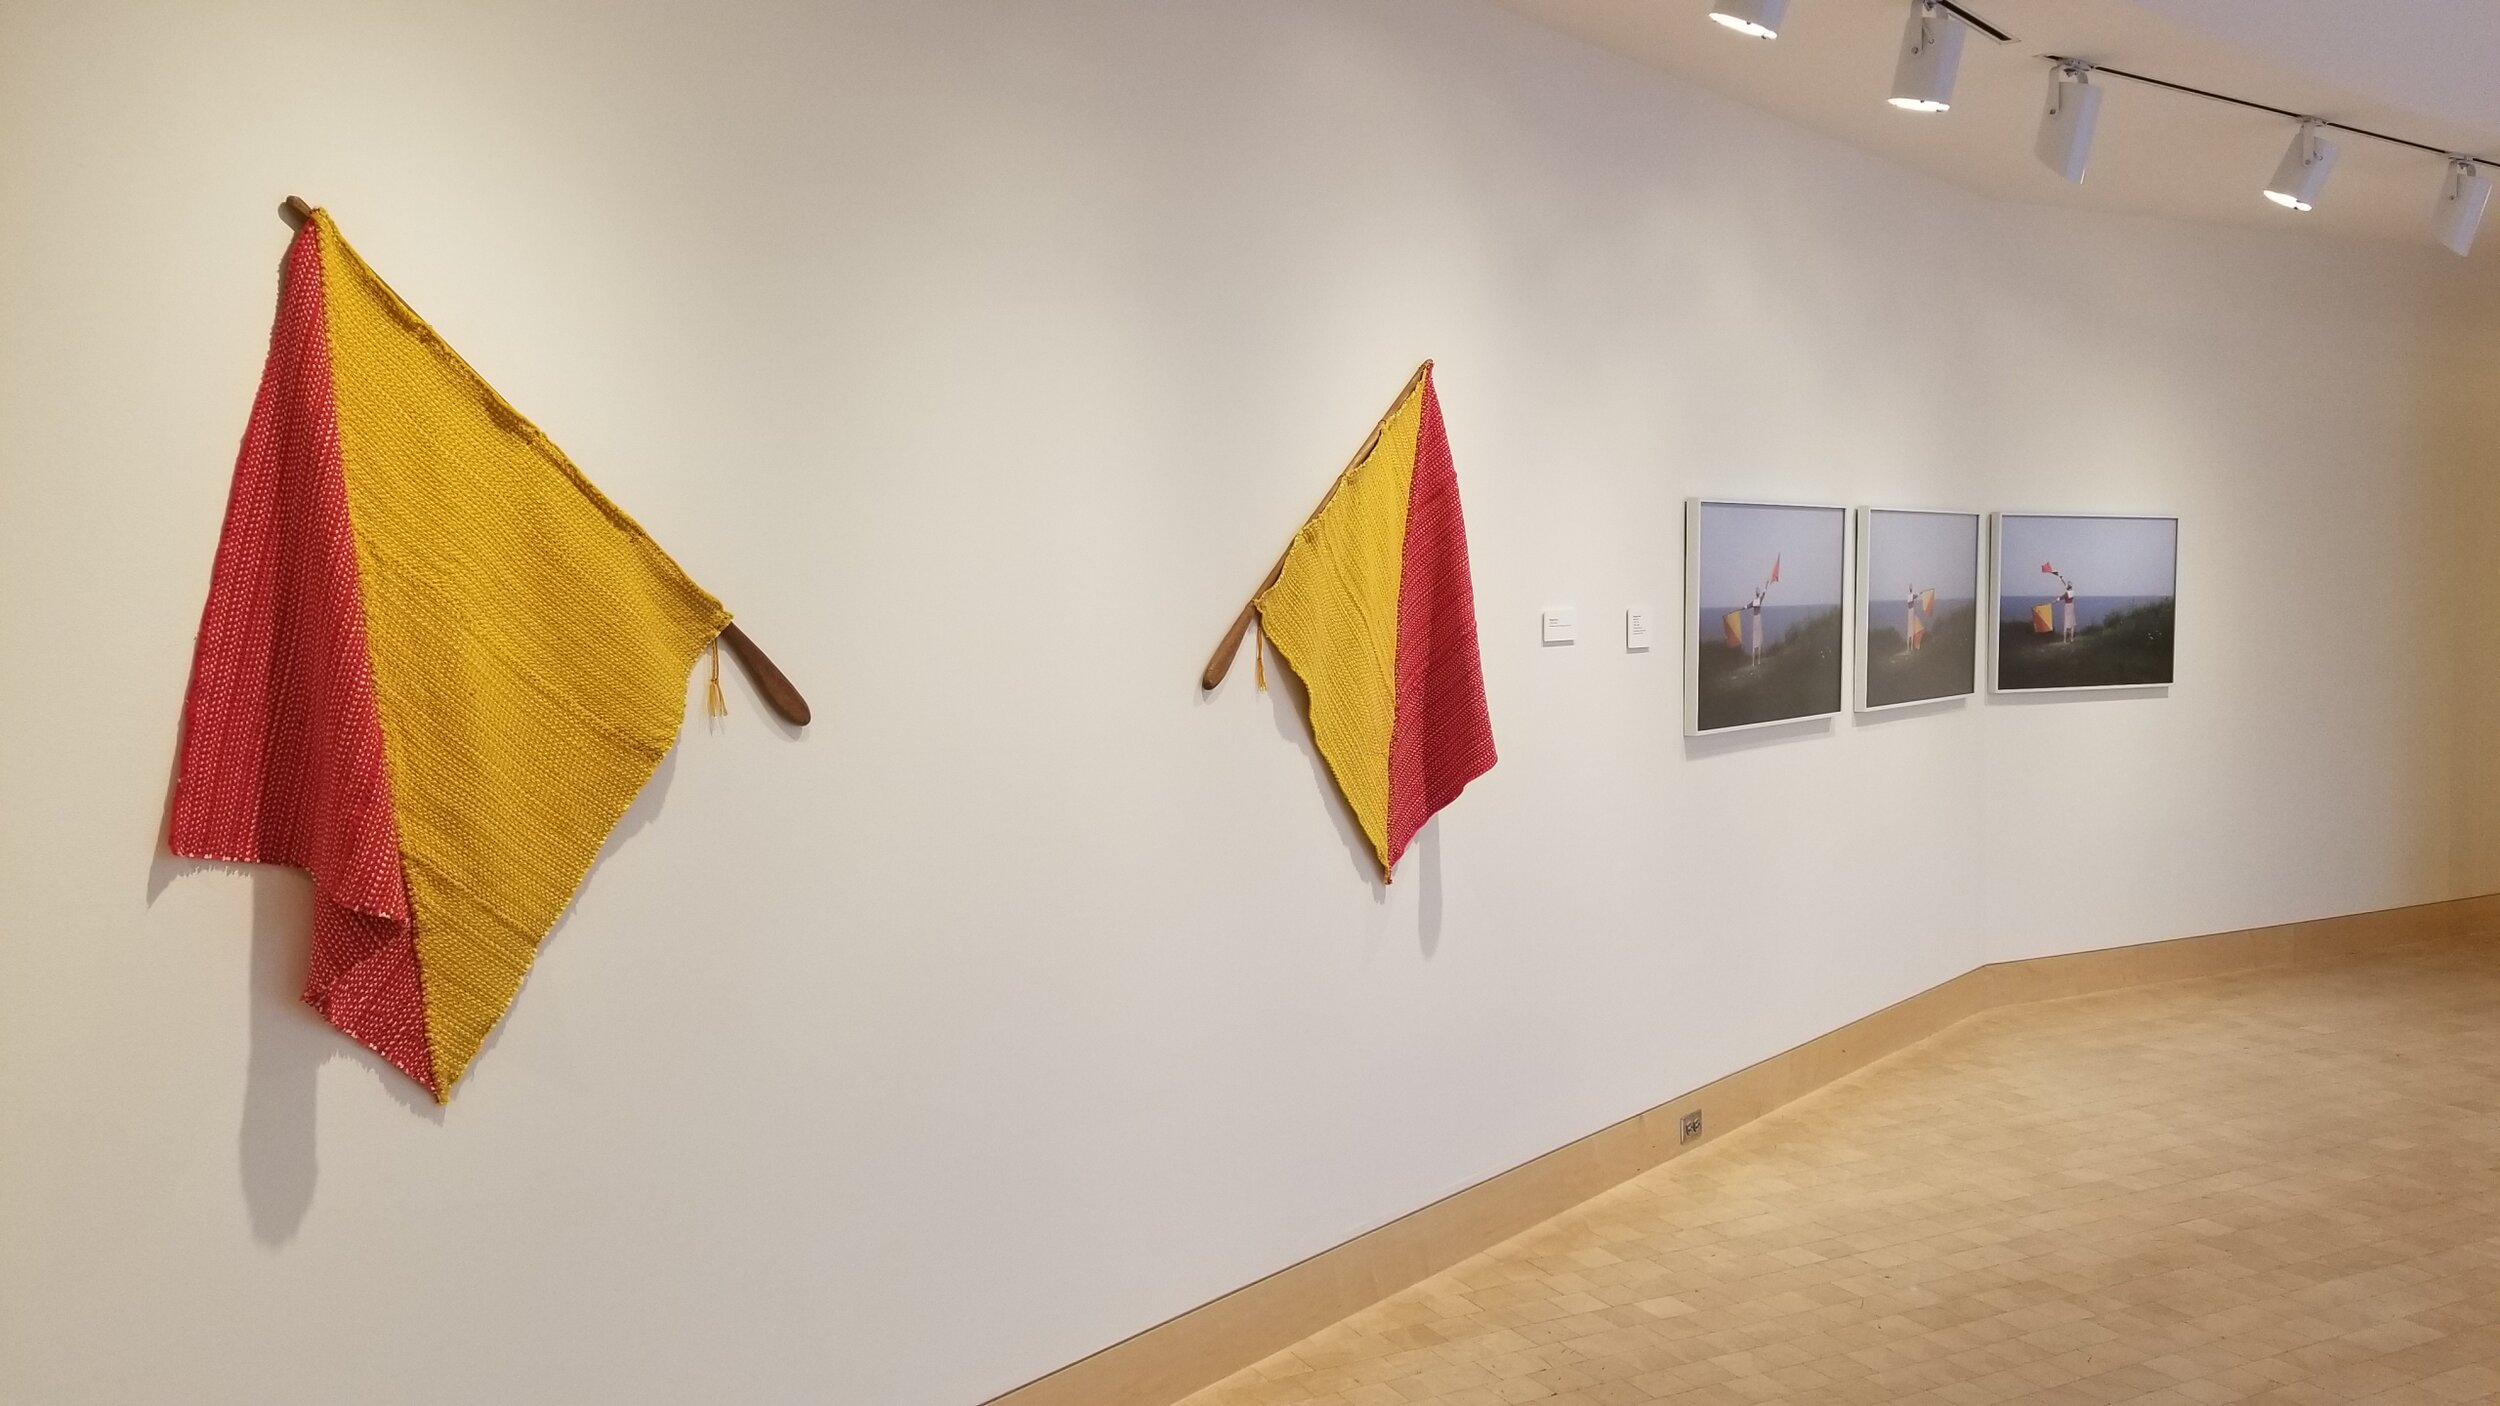 Y.H.W. , Handwoven flags with carved mahogany, photographic documentation of performance with flags, 2018